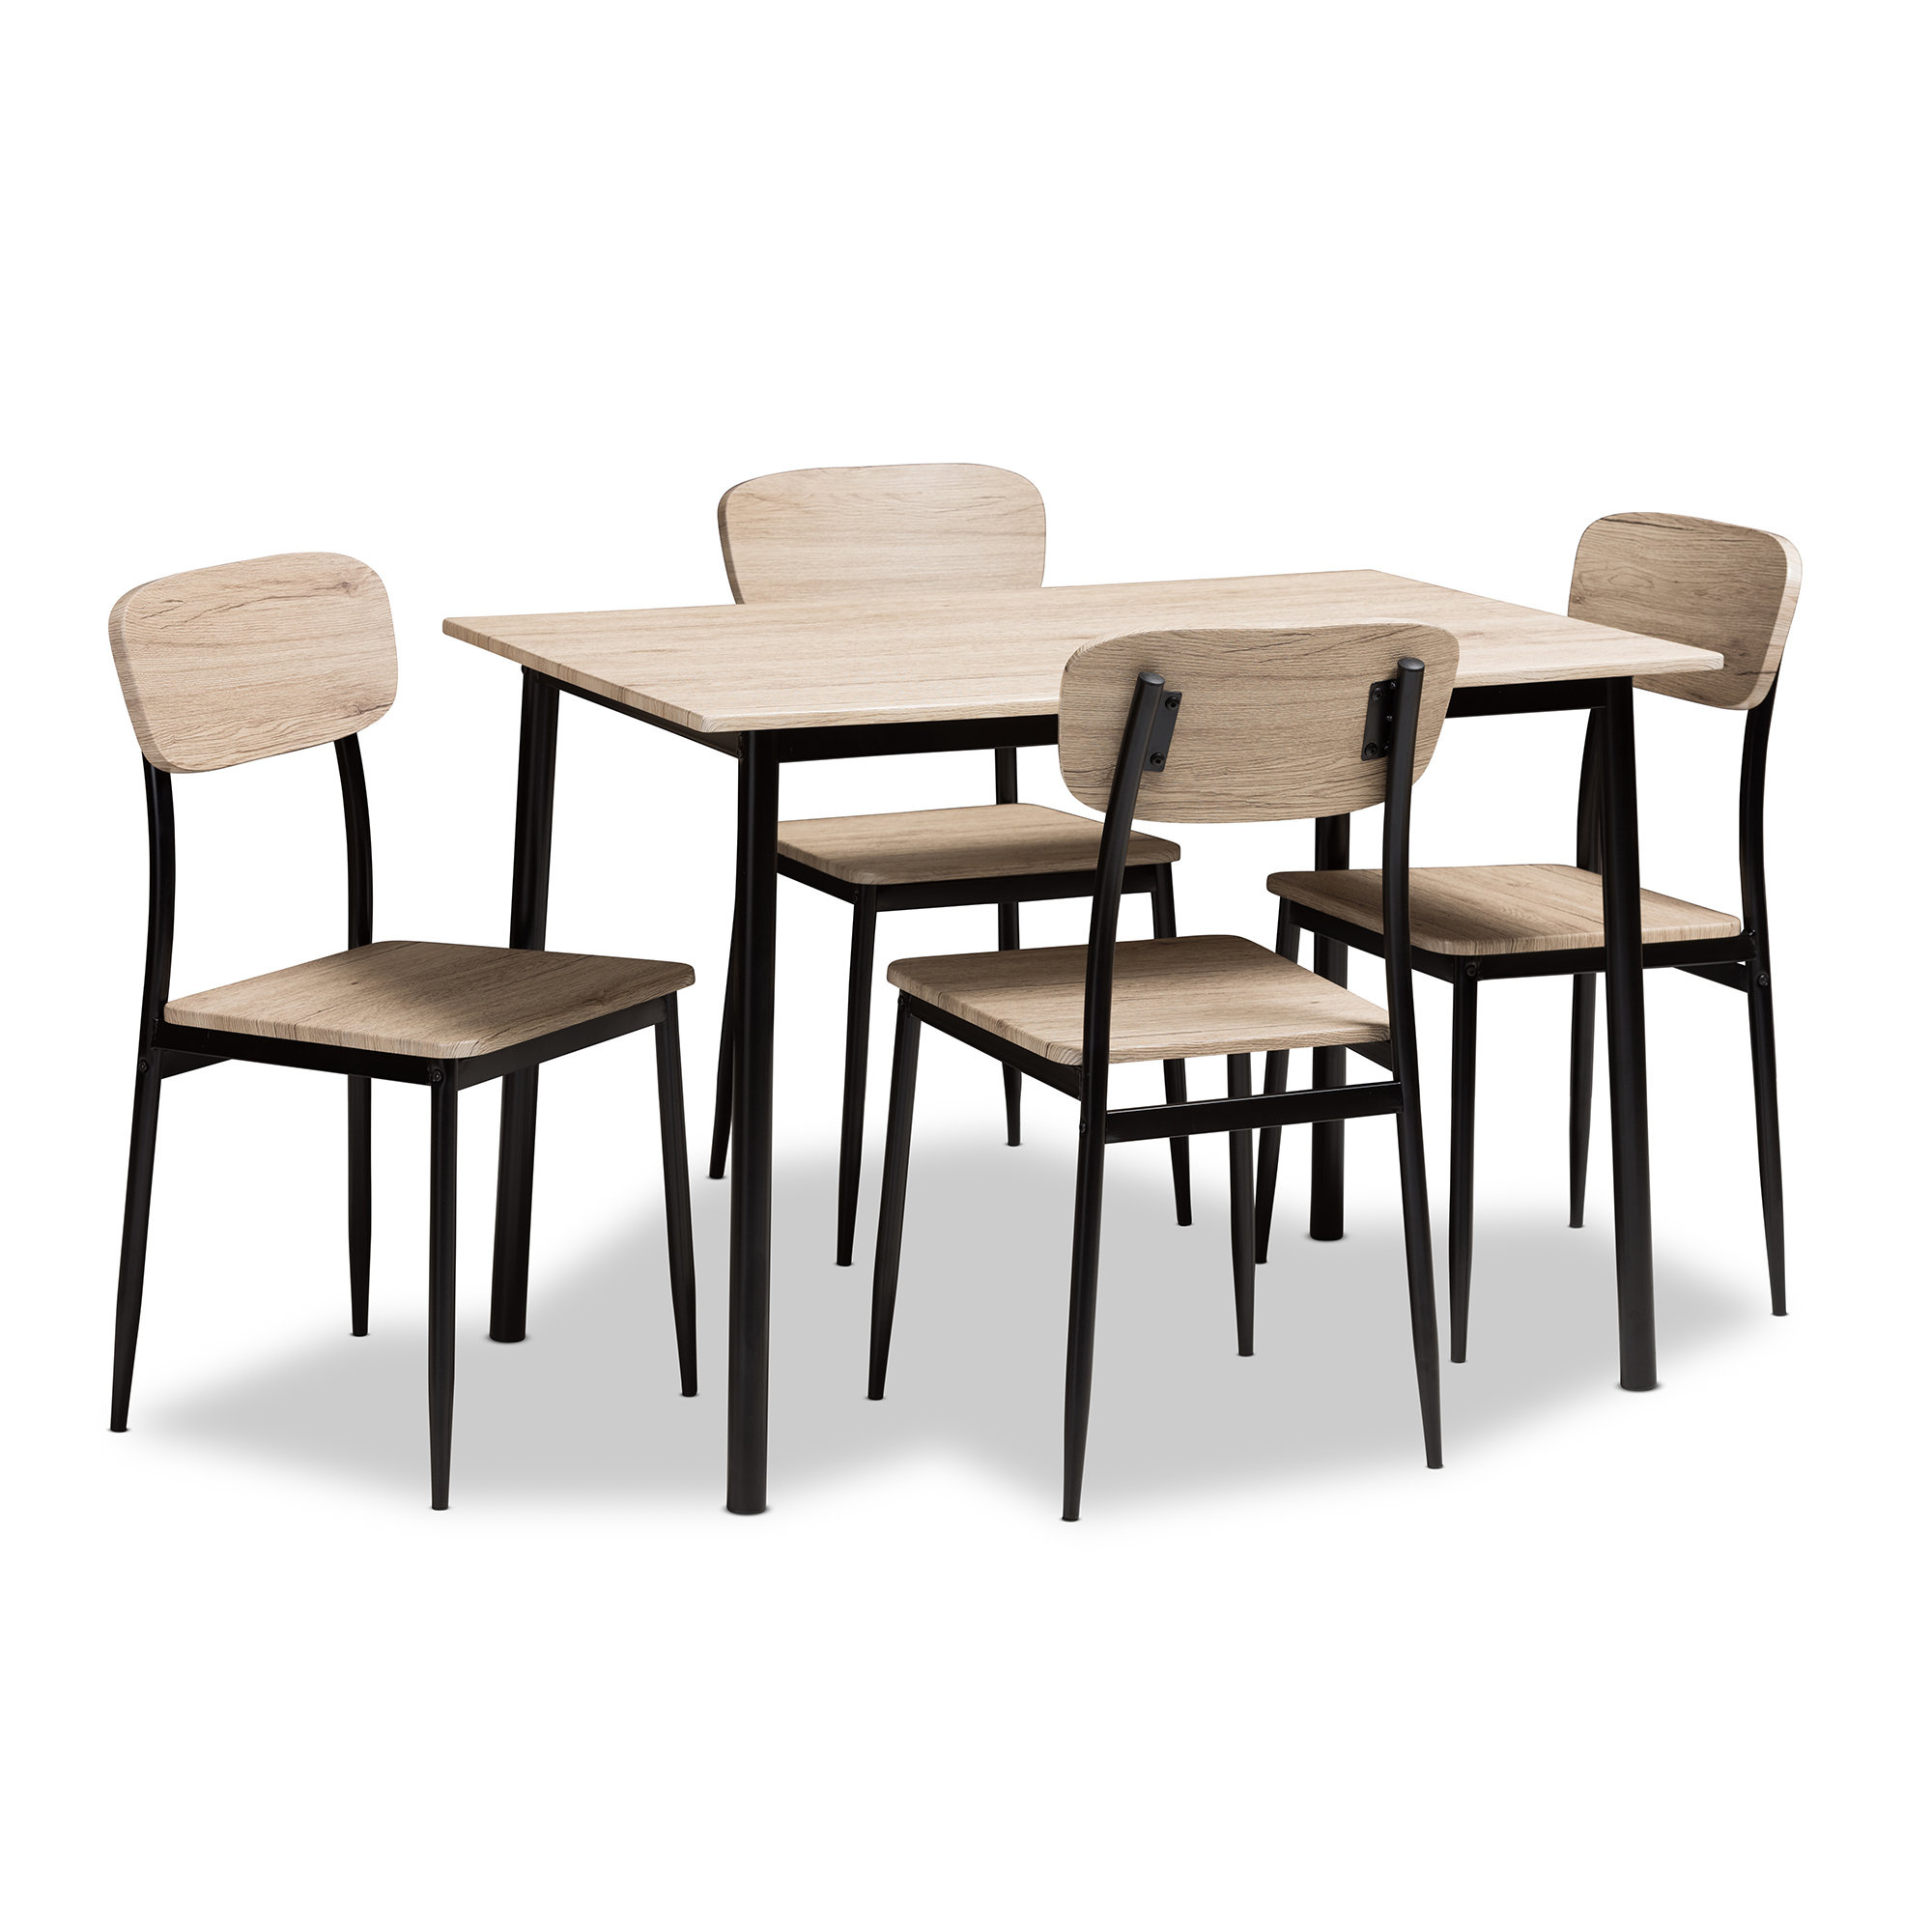 Wayfair For Trendy Partin 3 Piece Dining Sets (View 15 of 25)